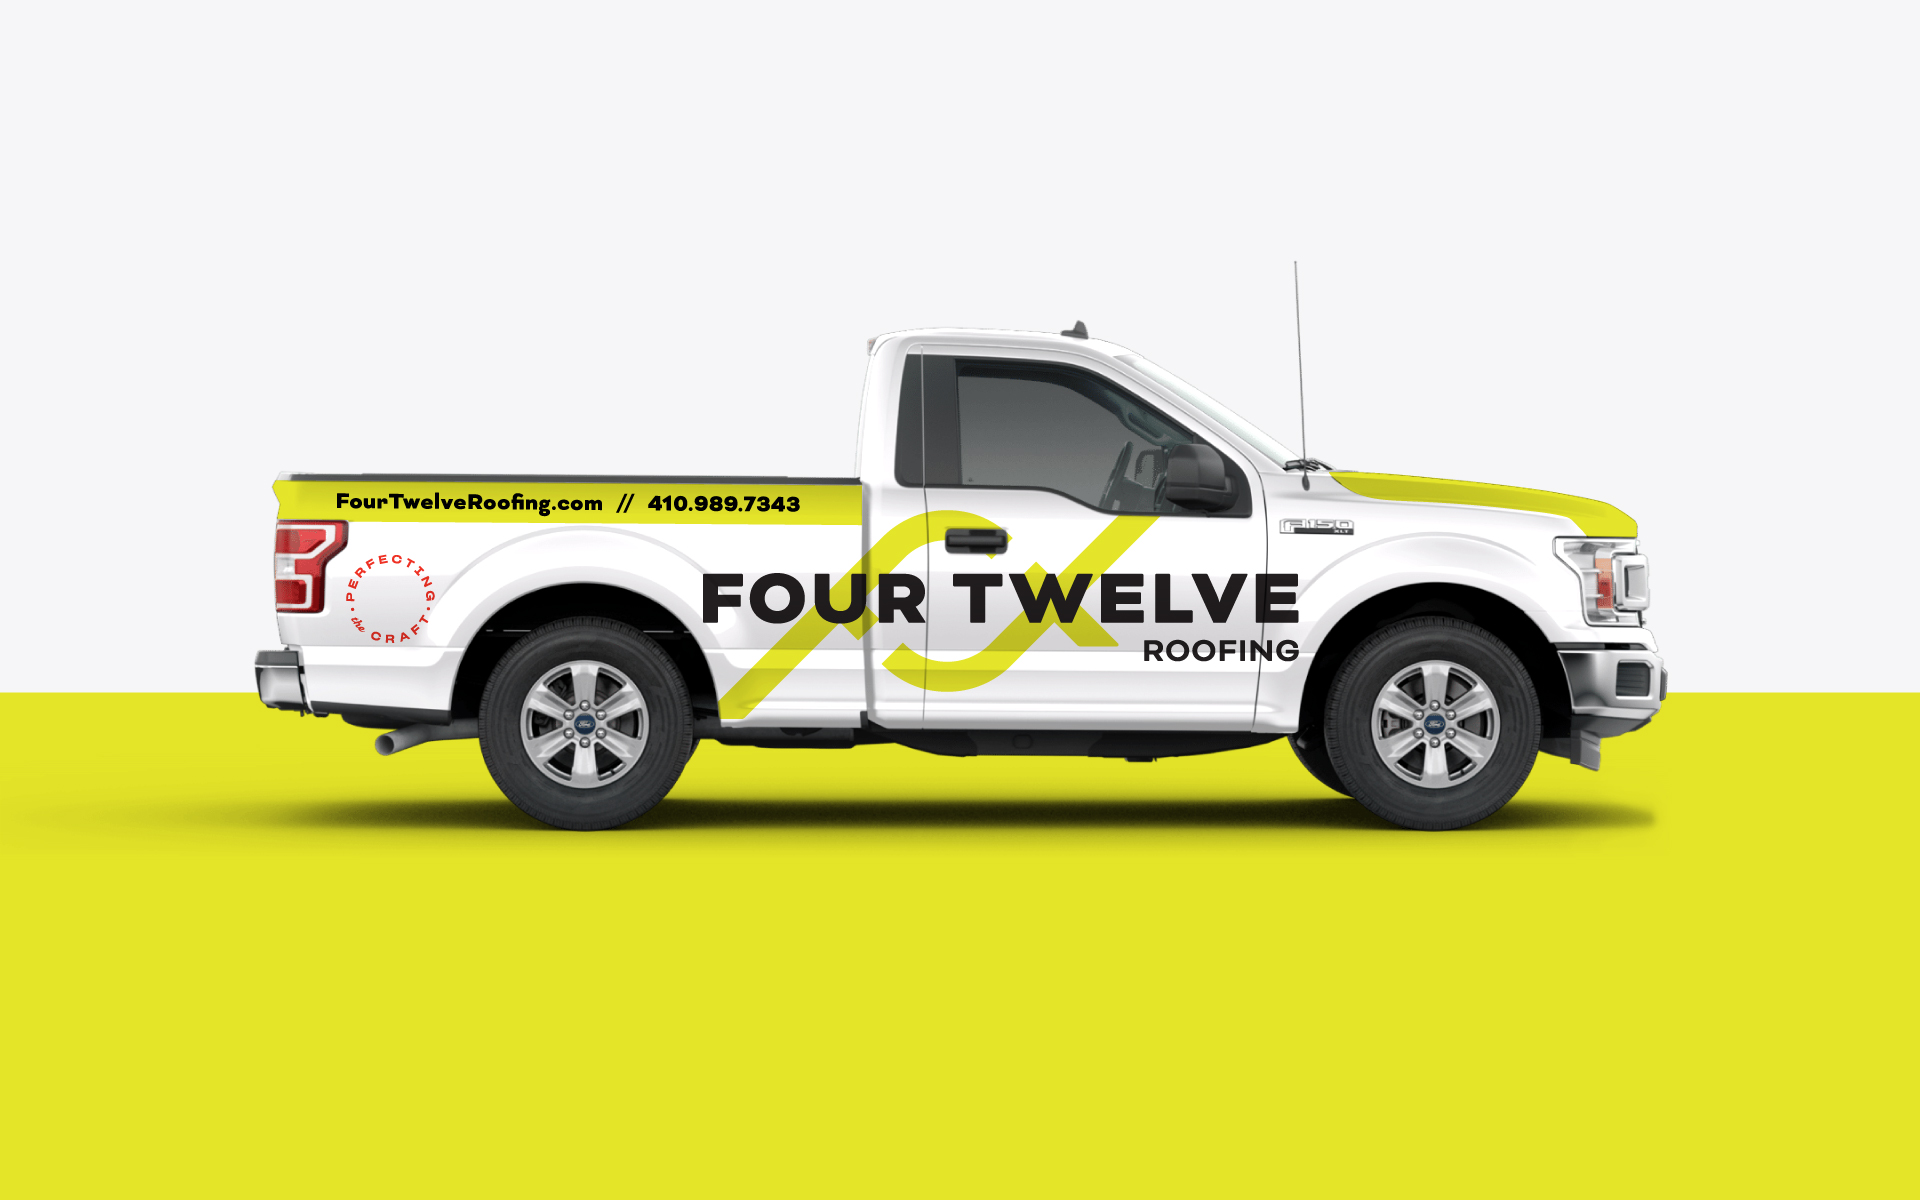 Four Twelve Roofing Truck Vehicle Wrap Side View